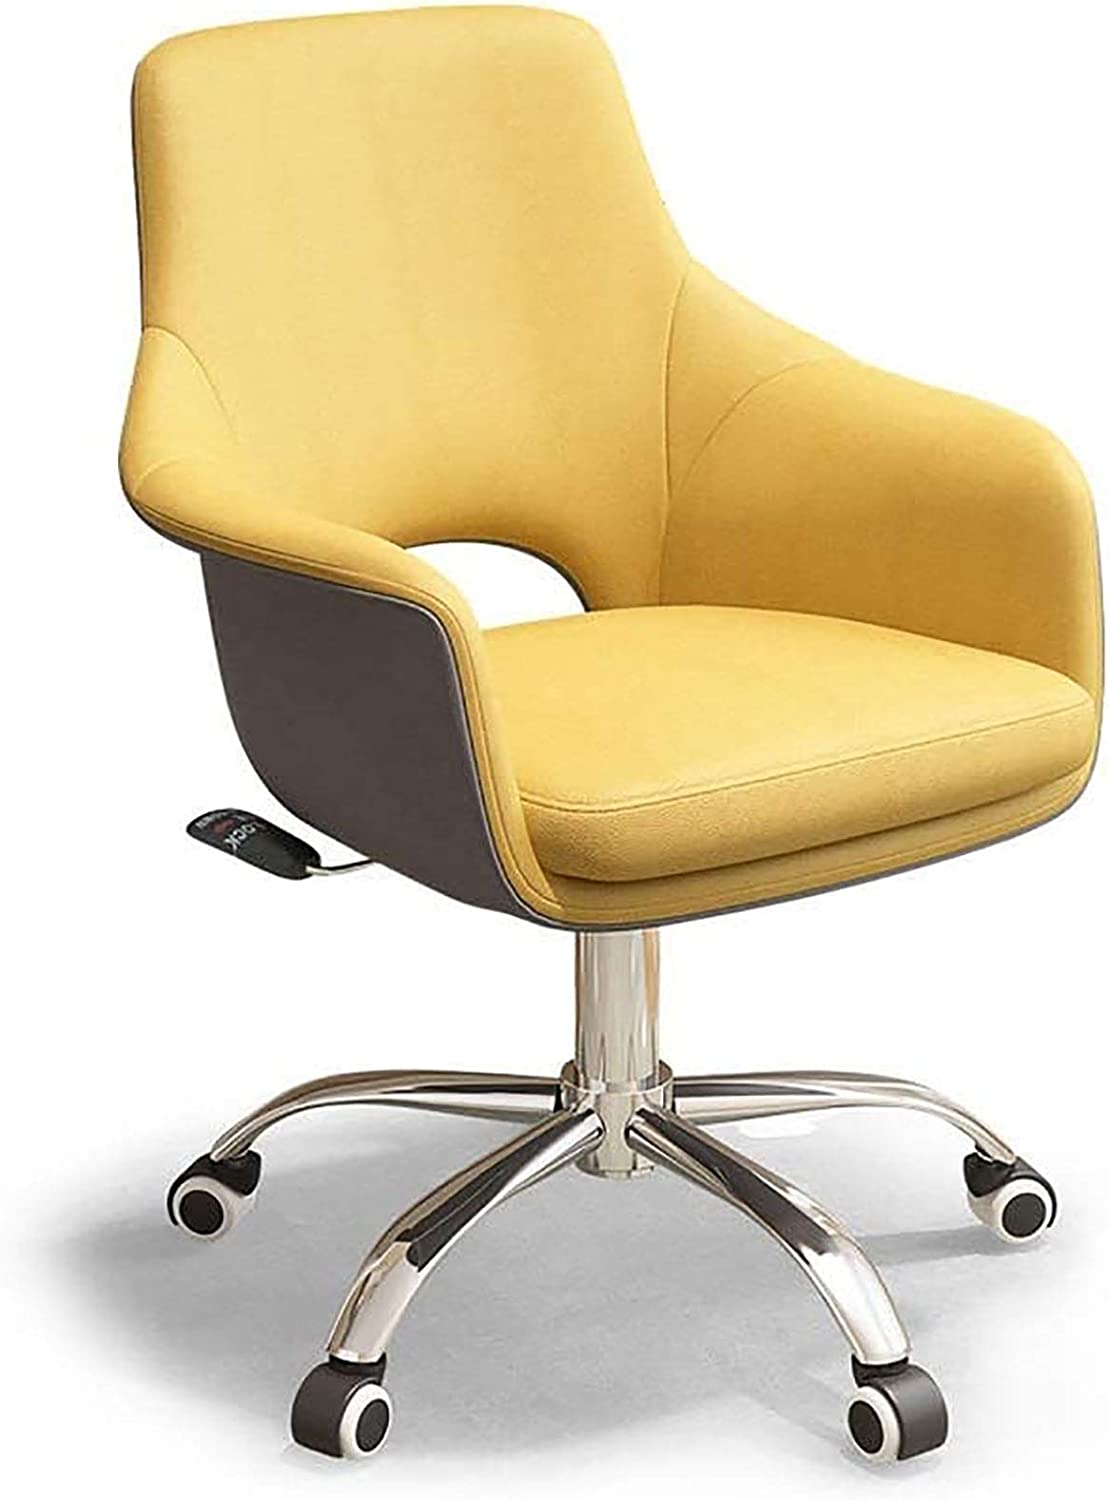 PLAYH Office Direct store Chairs Home and Garden Stool Mobile Chair Com Gamer Deluxe